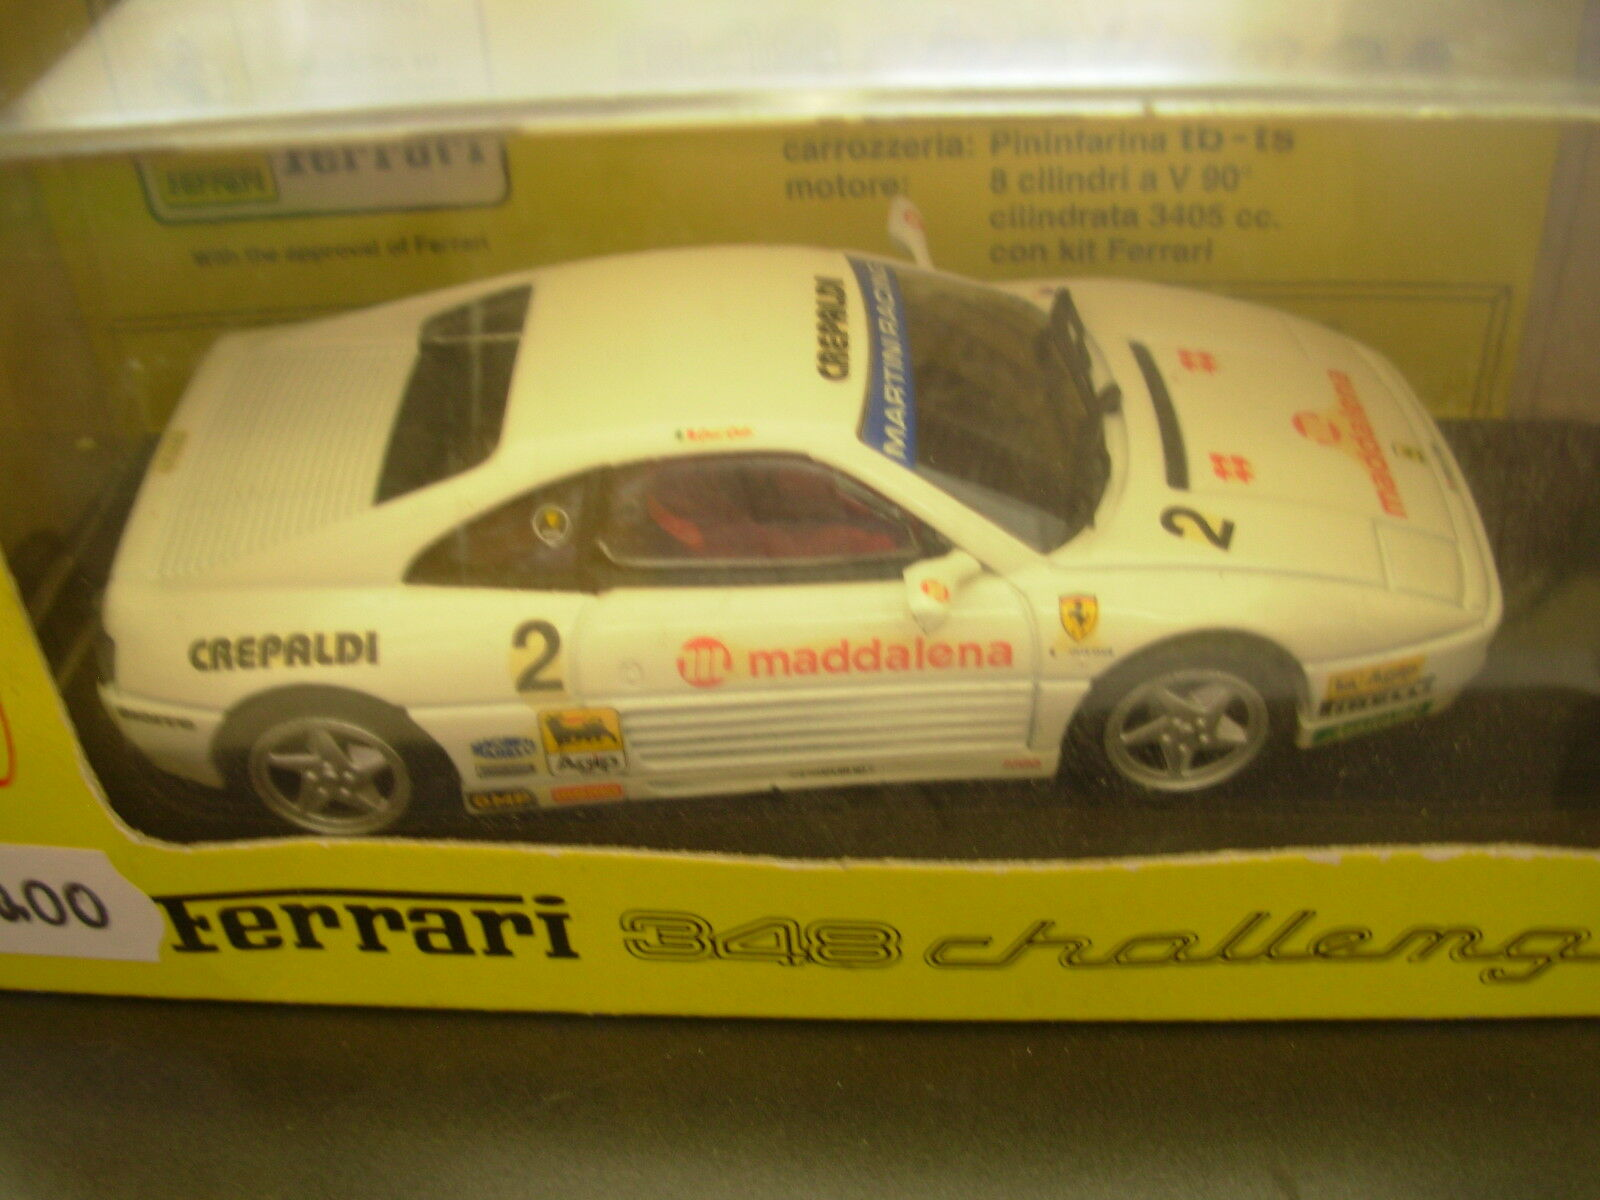 BANG 1 43 MADE IN ITALY AUTO DIE CAST FERRARI 348 CHALLENGE G. GIUDICI ART. 9302